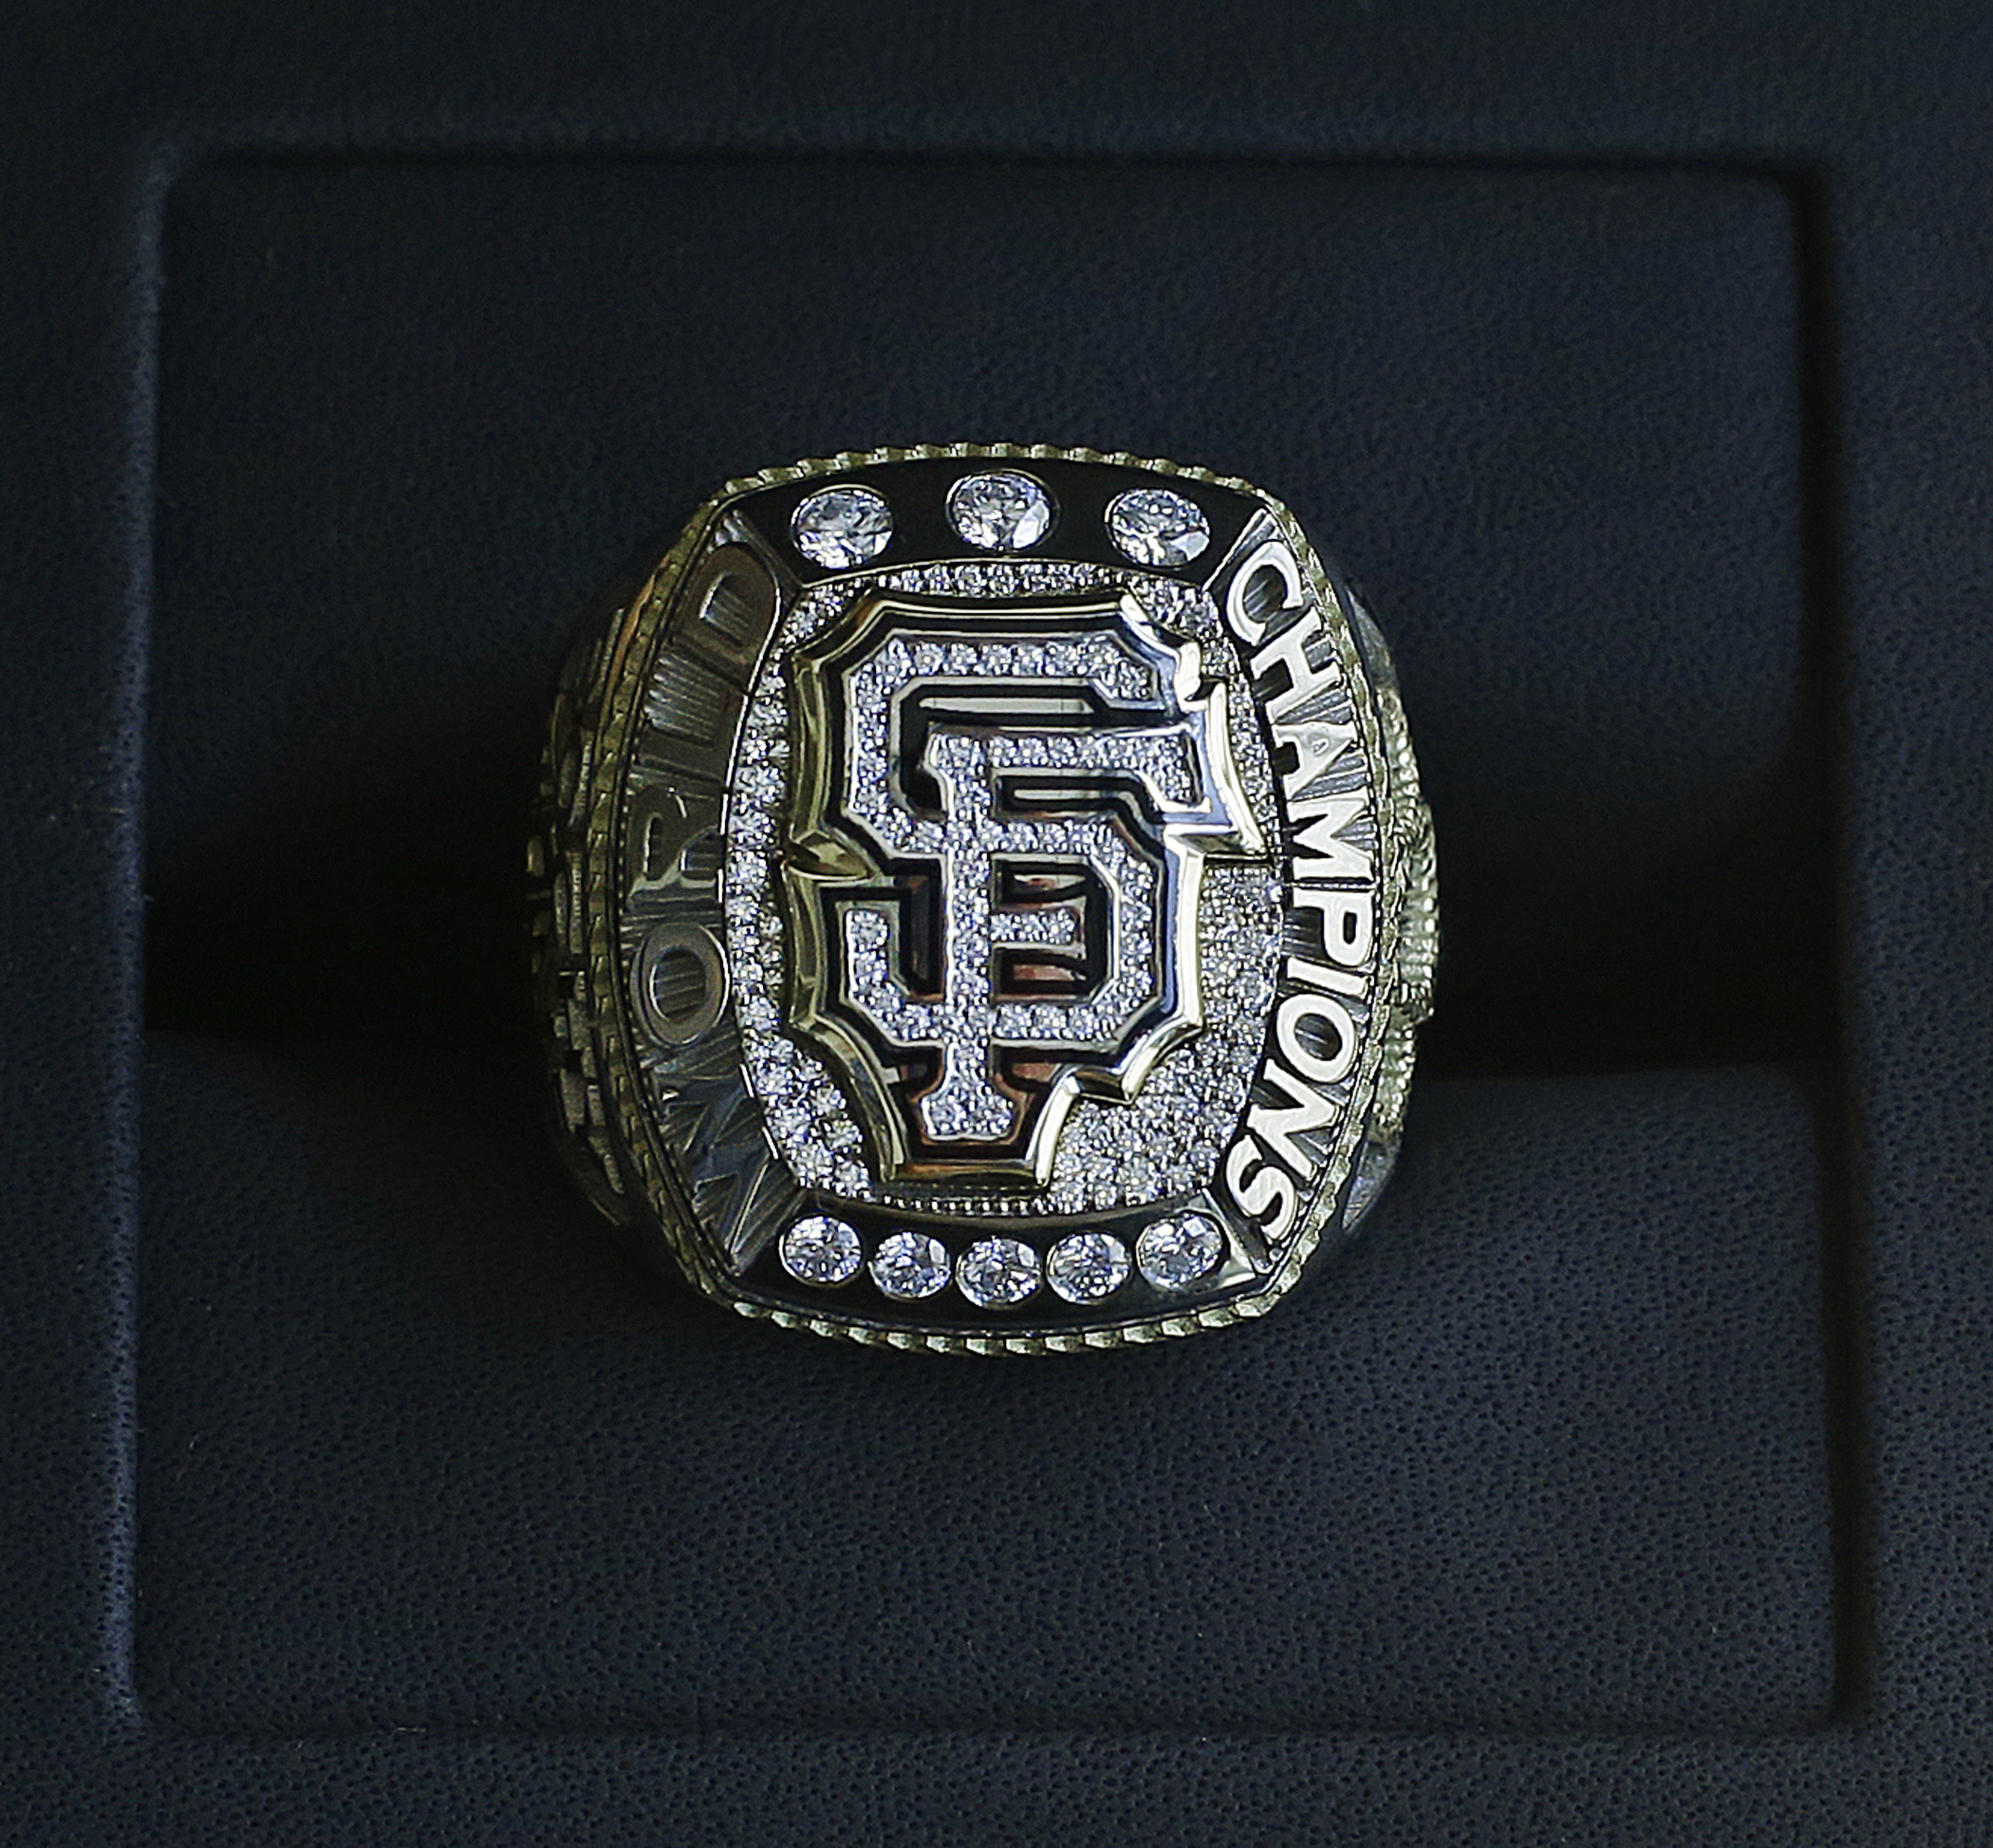 The 2014 World Series championship ring belonging to San Francisco Giants manager Bruce Bochy is displayed prior to the Giants' baseball game against the Arizona Diamondbacks on Saturday, April, 18, 2015, in San Francisco. (AP Photo/Ben Margot)